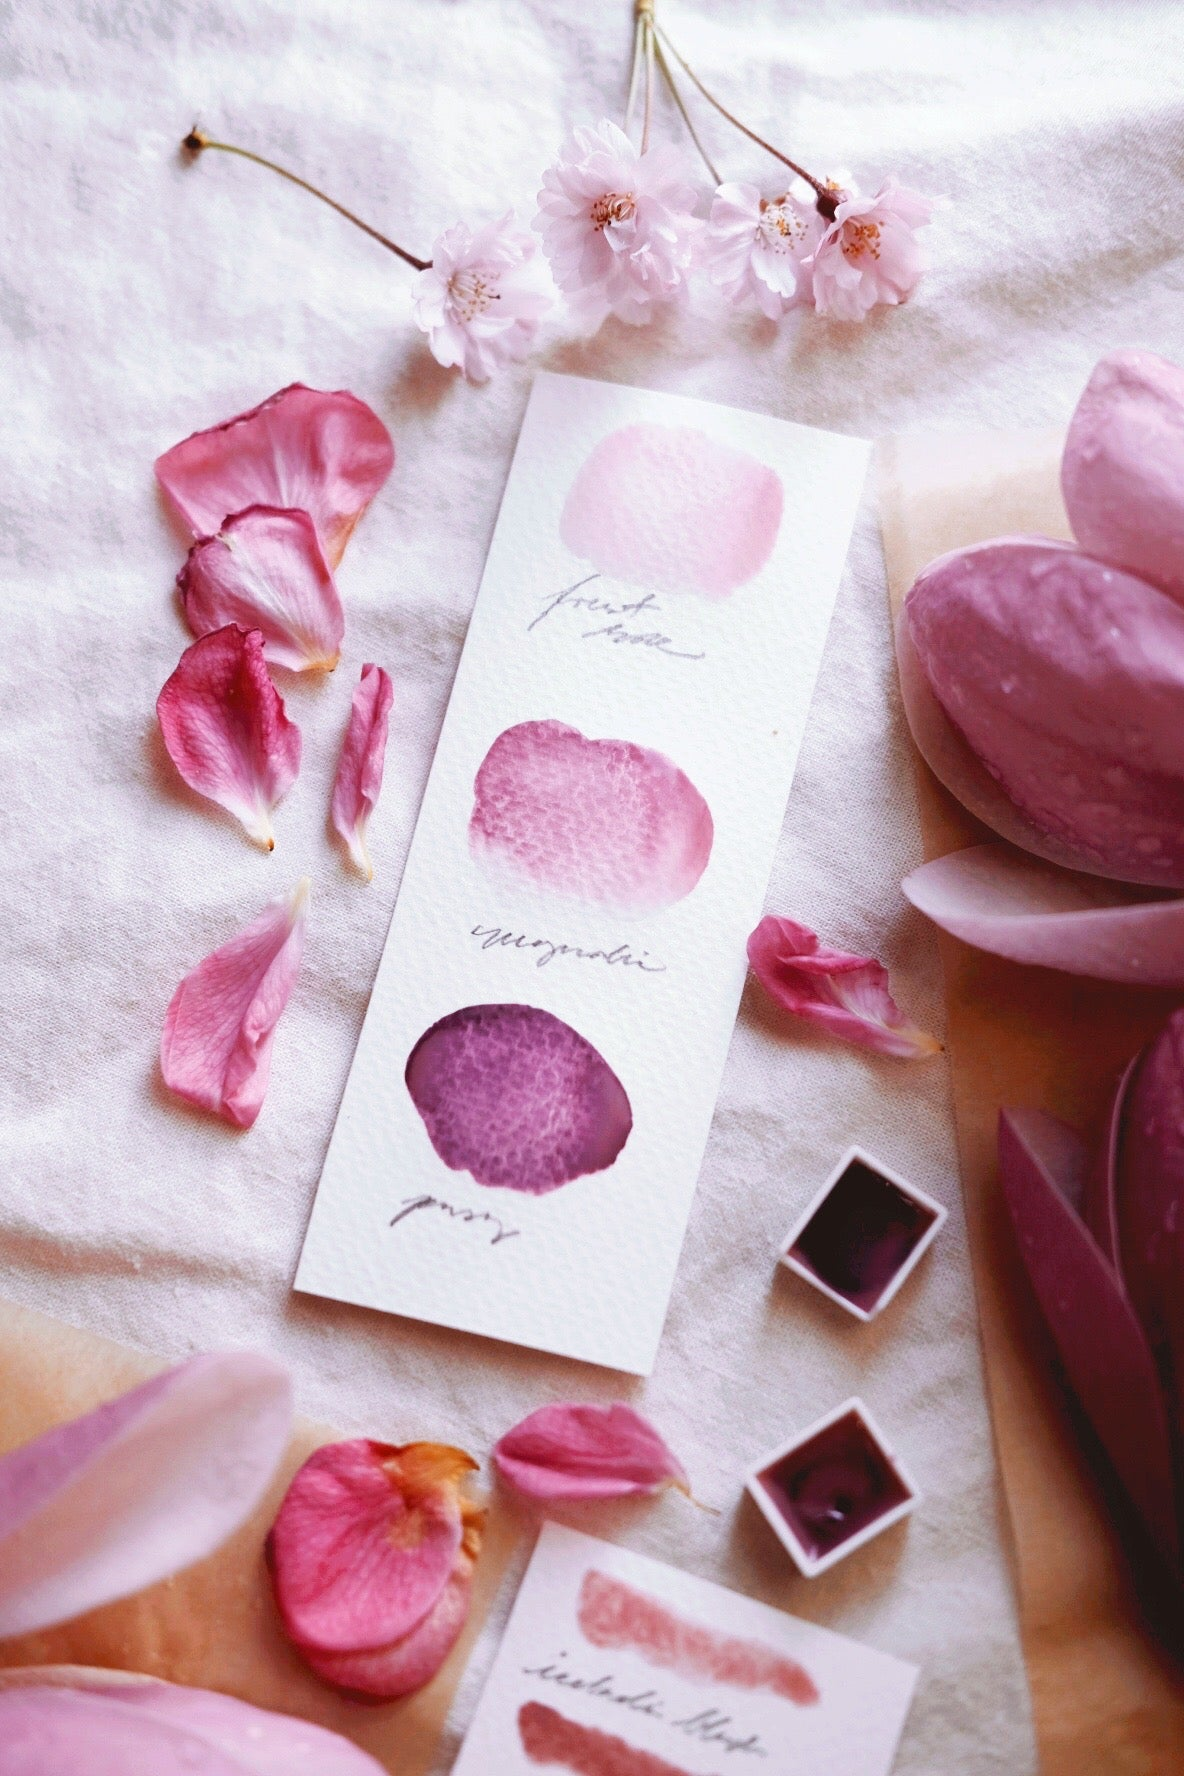 RESERVE for Elodie + Pink Blossom + Limited edition gemstone watercolor palette